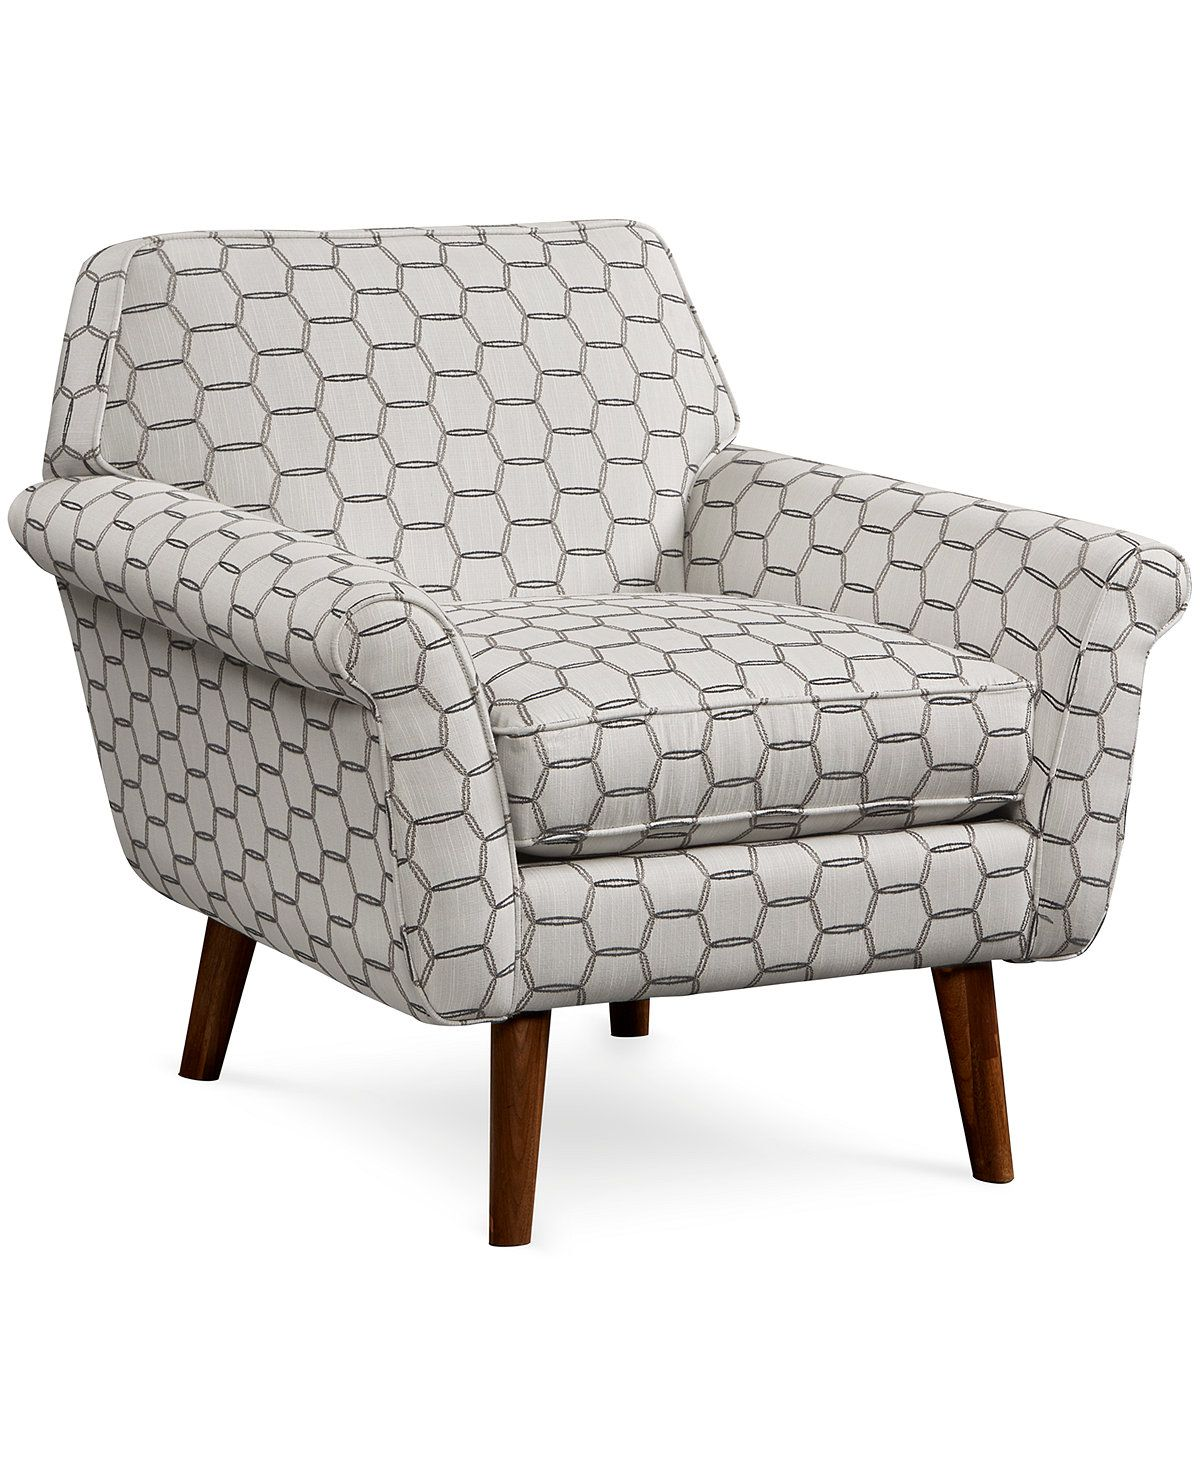 Braylei Accent Chair